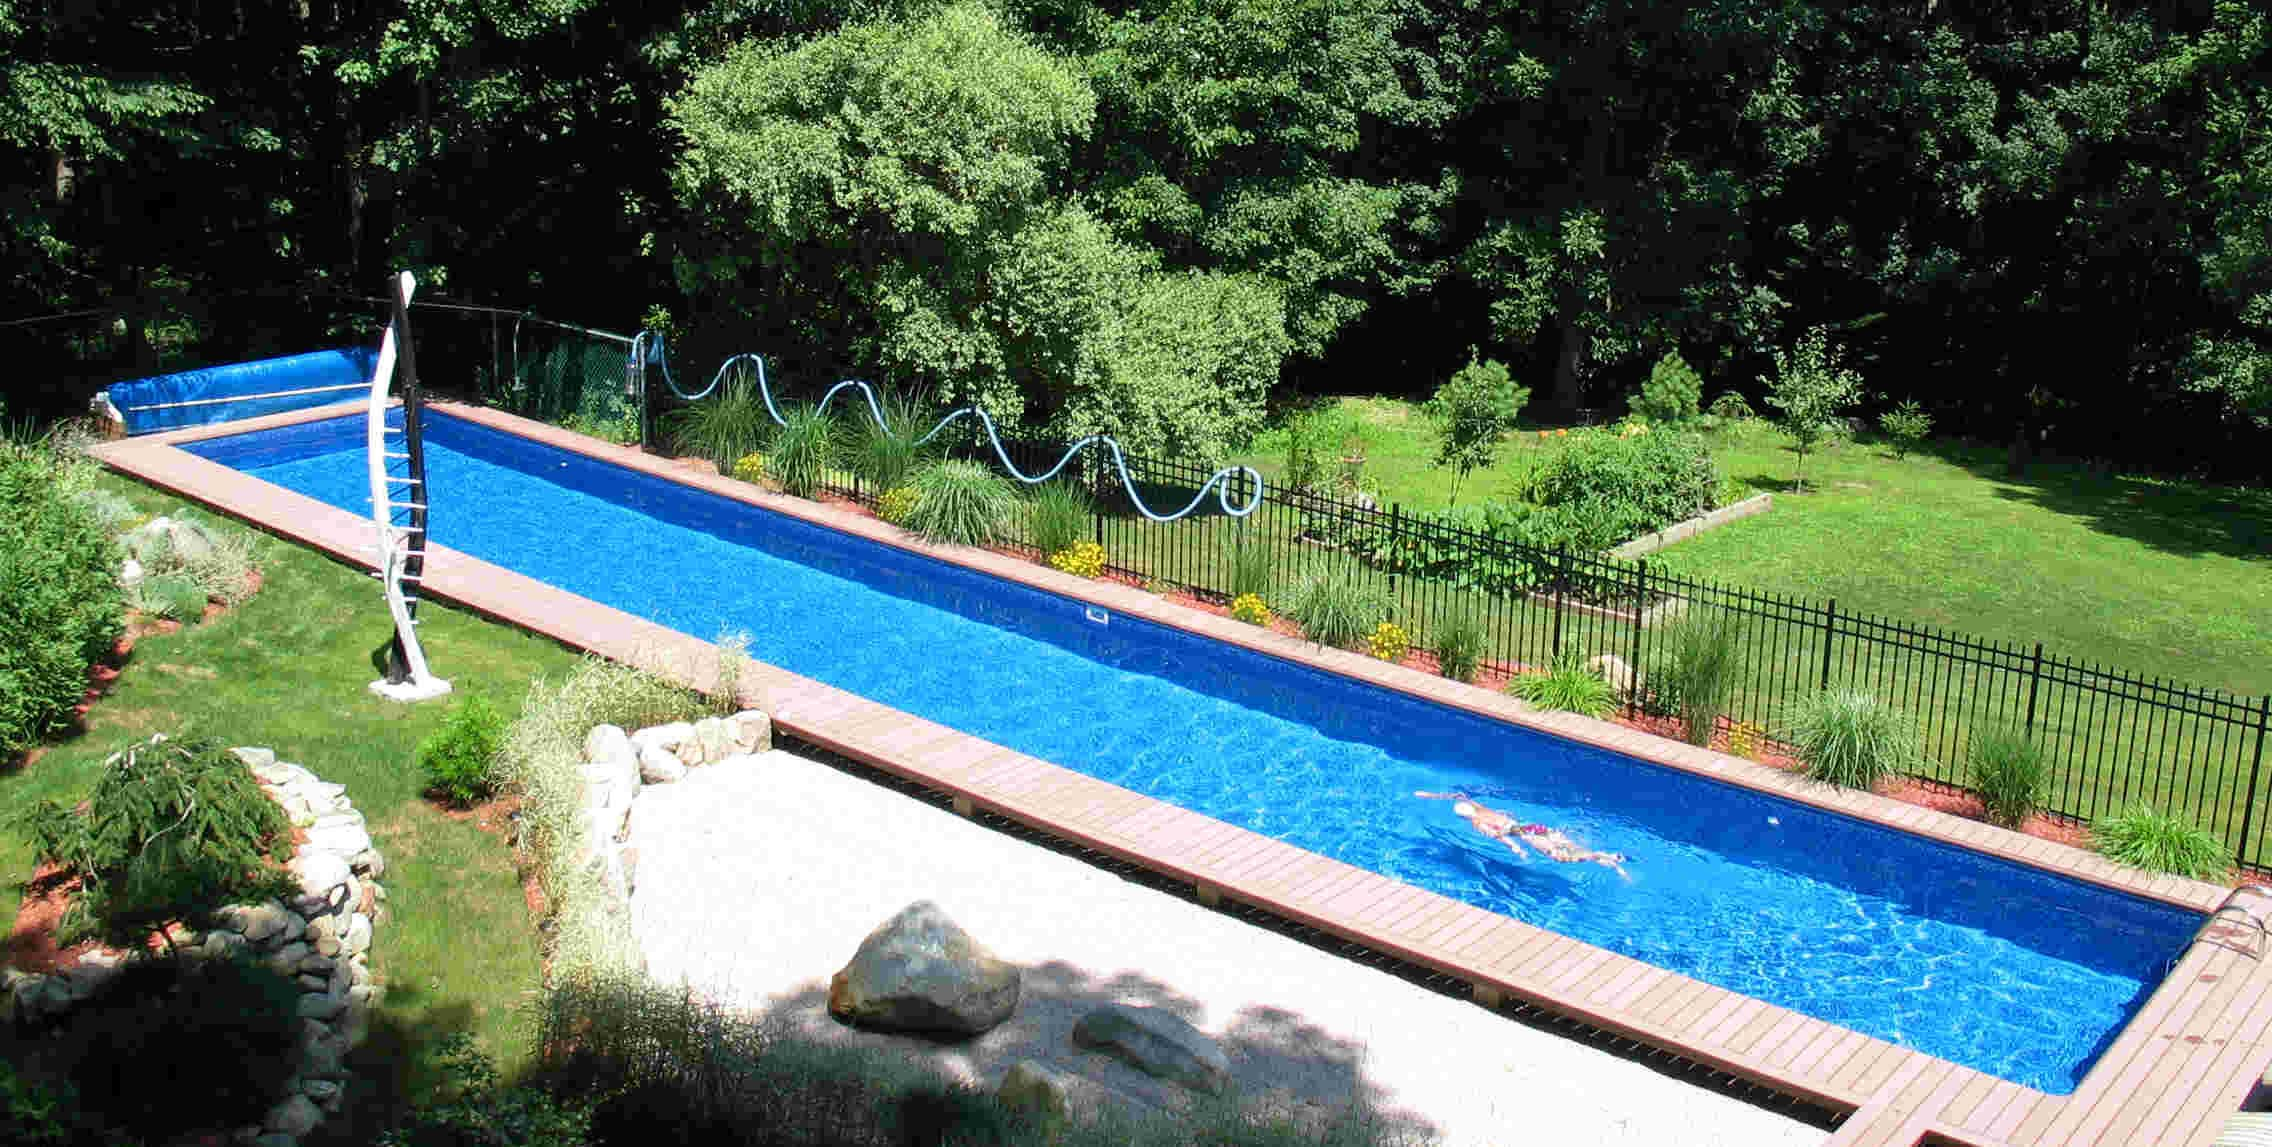 Diy inground swimming pool backyard design ideas diy inground swimming pool solutioingenieria